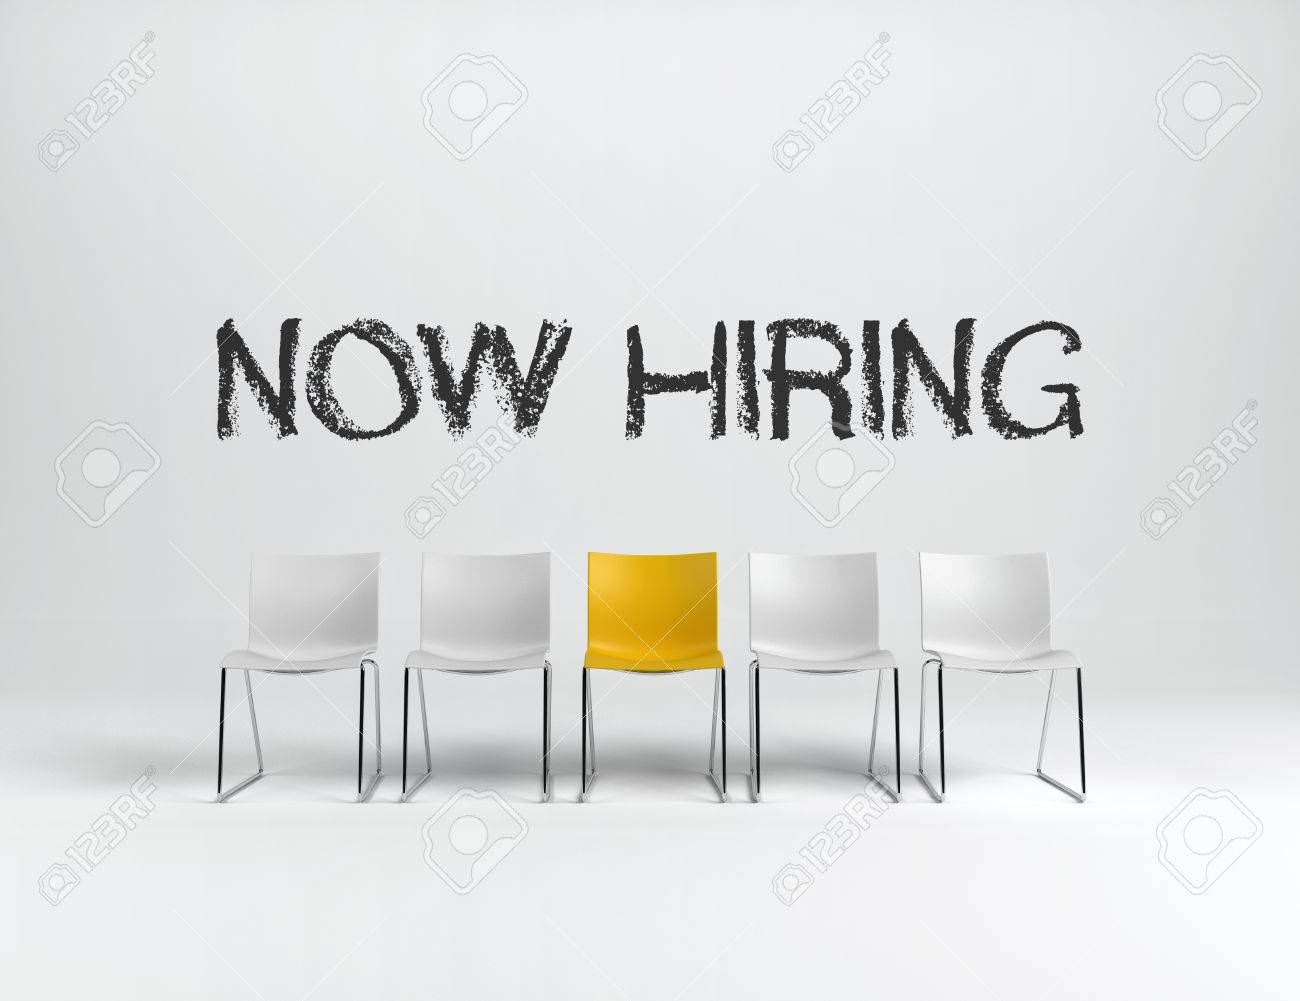 Empty white and yellow chairs on white background with NOW HIRING sign in center. Business concept. 3d rendering. Standard-Bild - 70446777